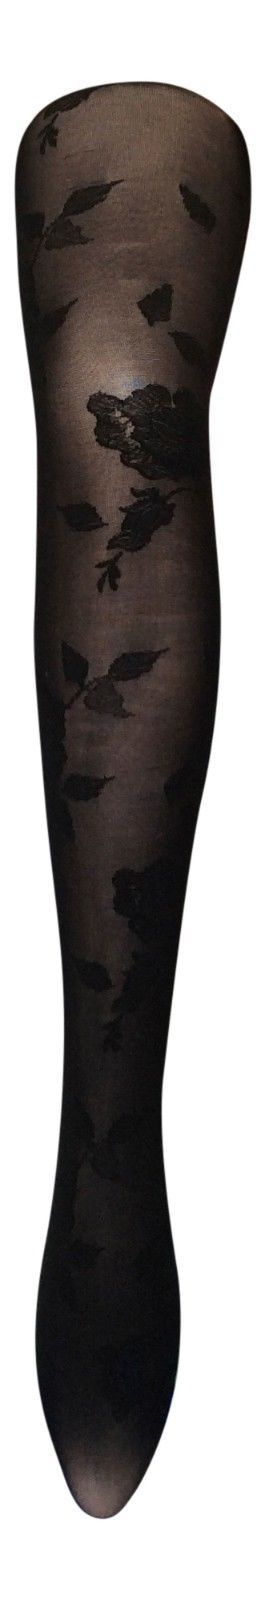 Sock Snob - Womens 40 Denier Opaque Black Colorful Floral Rose Patterned Tights